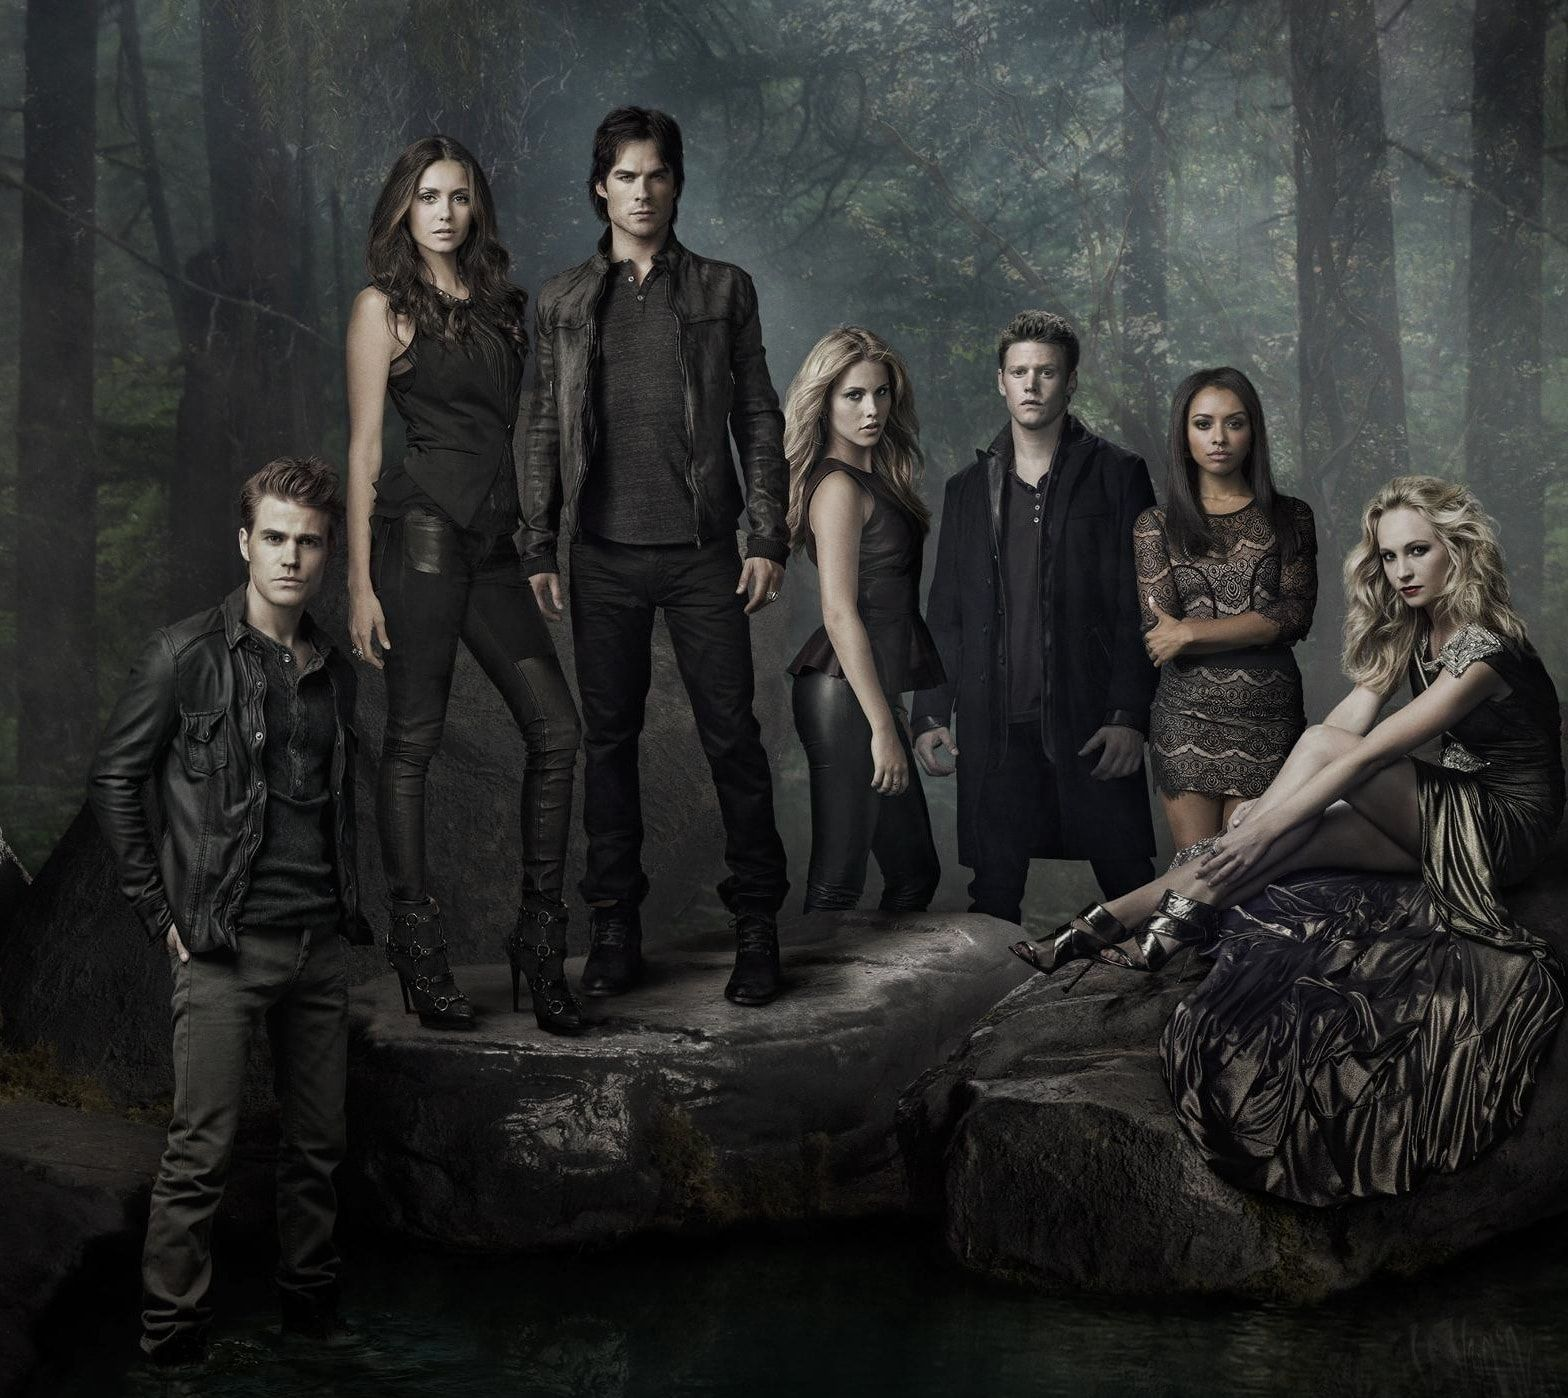 The Vampire Diaries HD Desktop Wallpapers | 7wallpapers.net